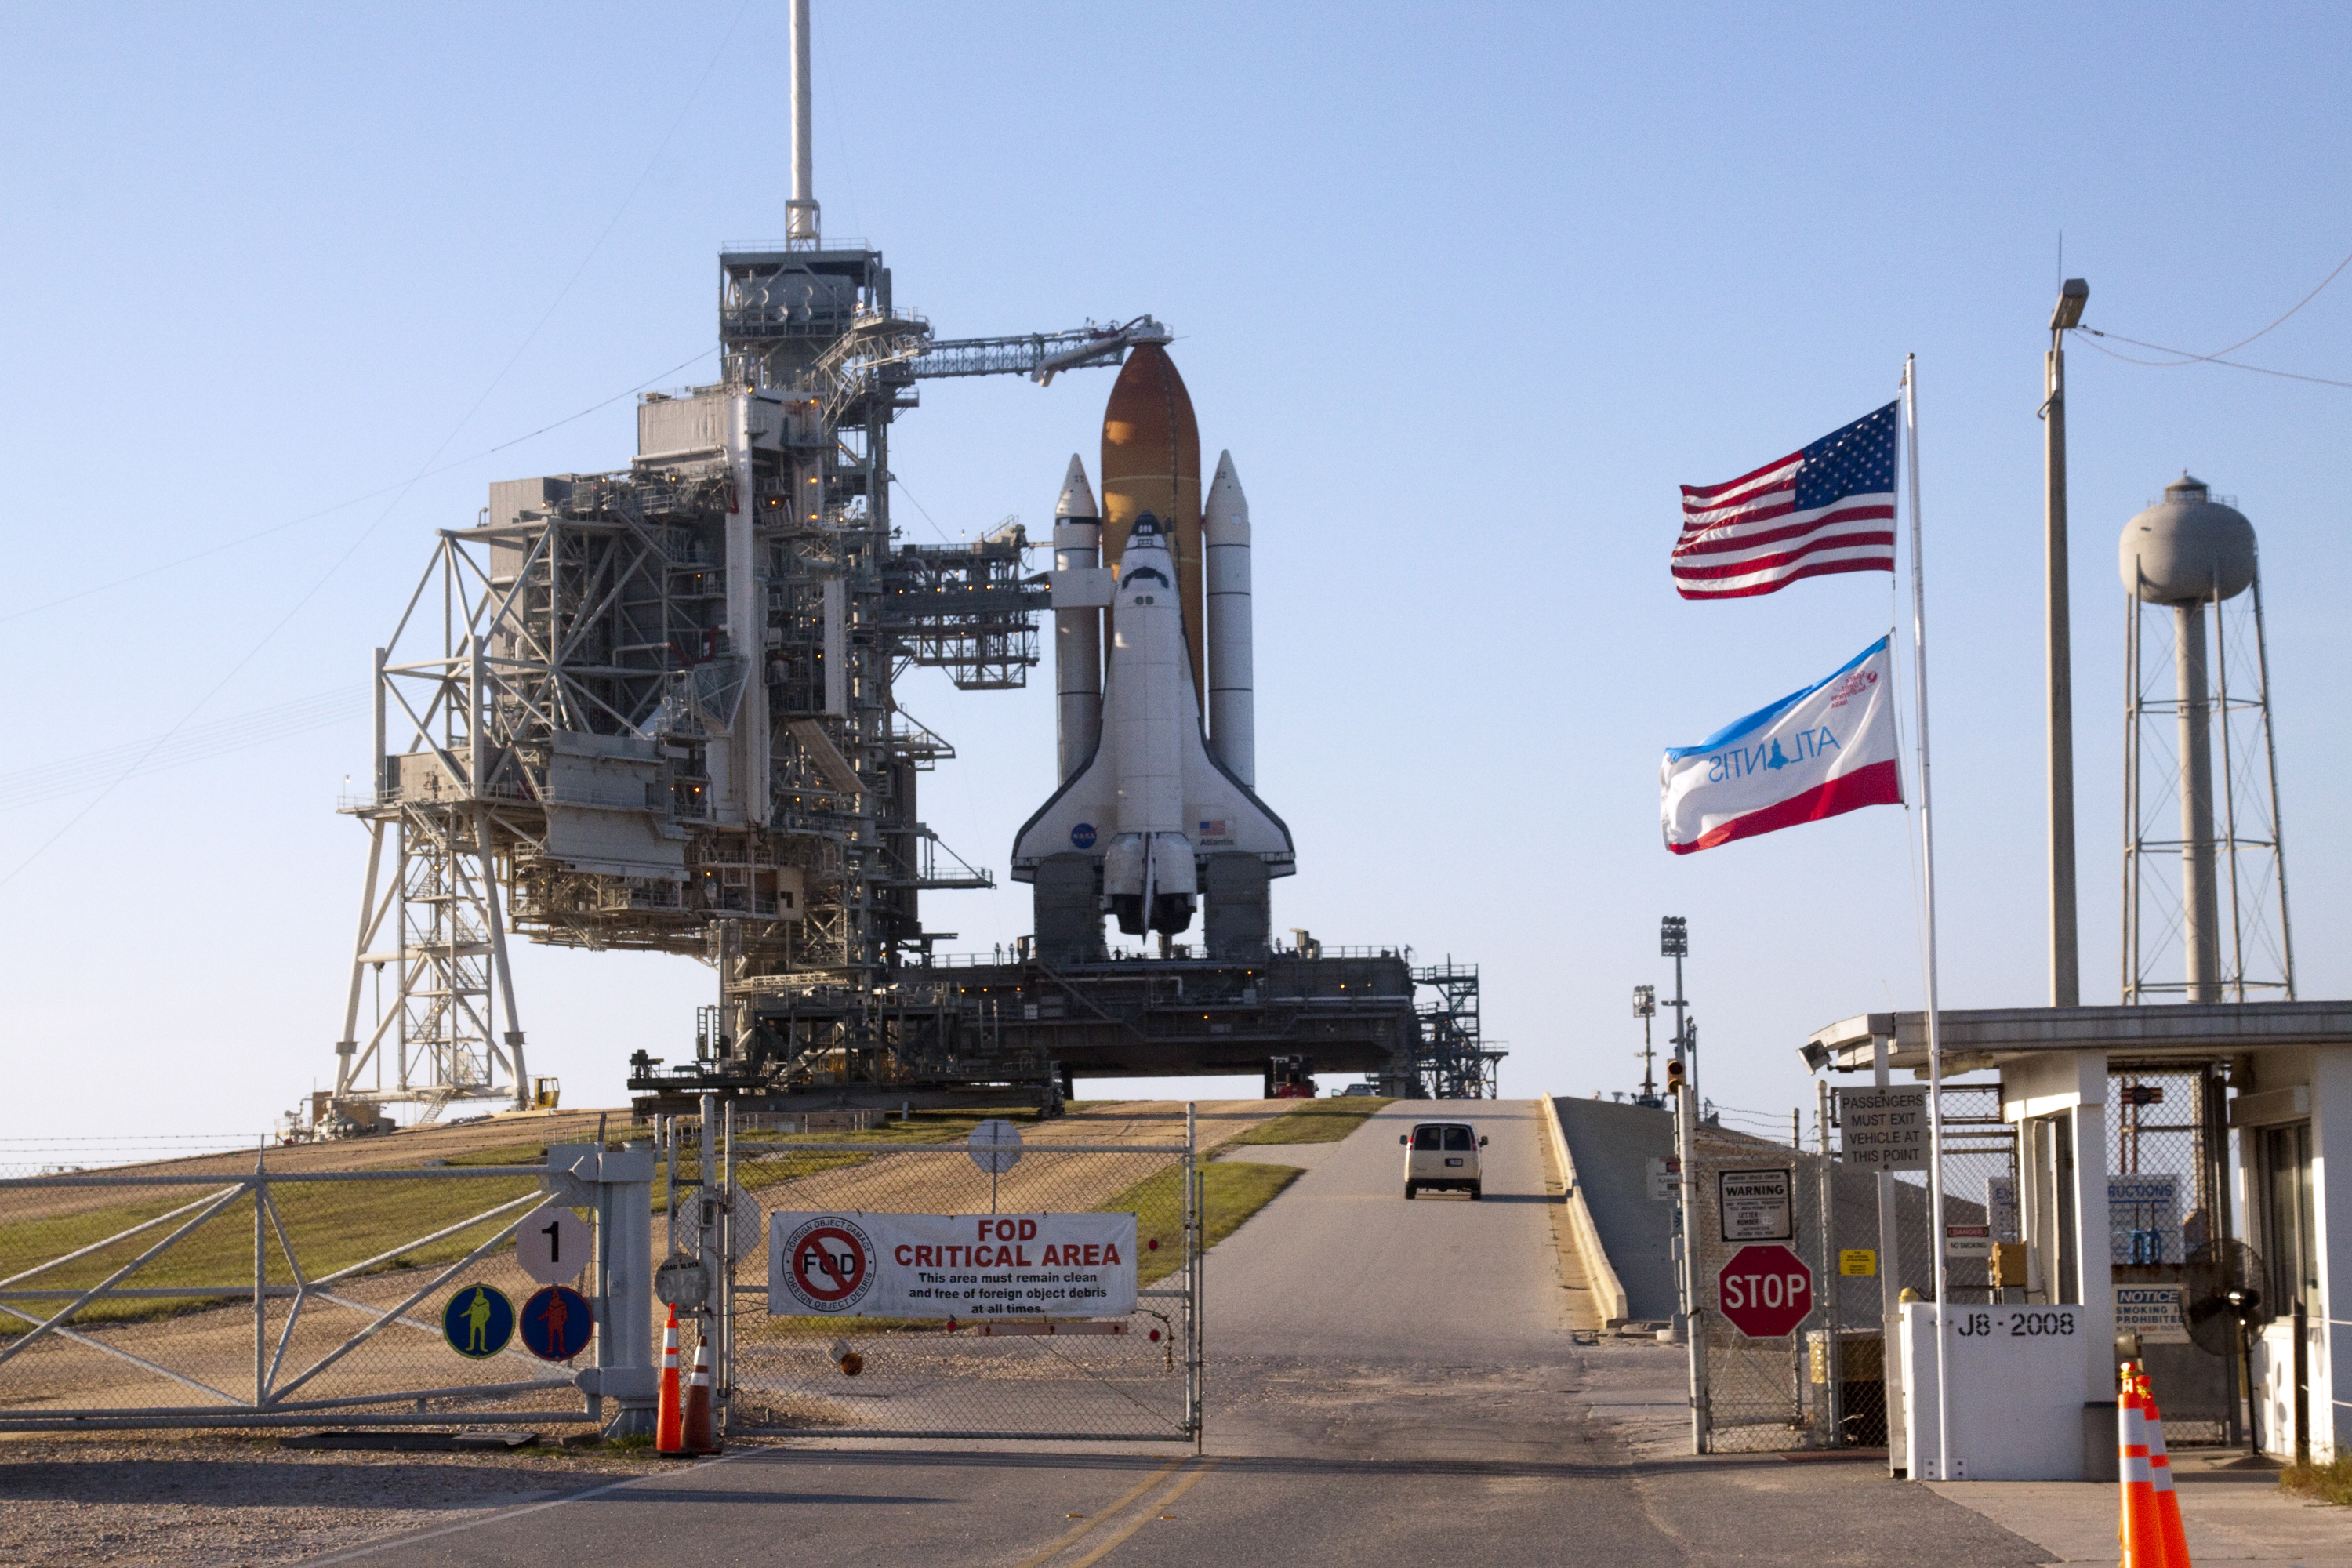 News From Space! » STS-132